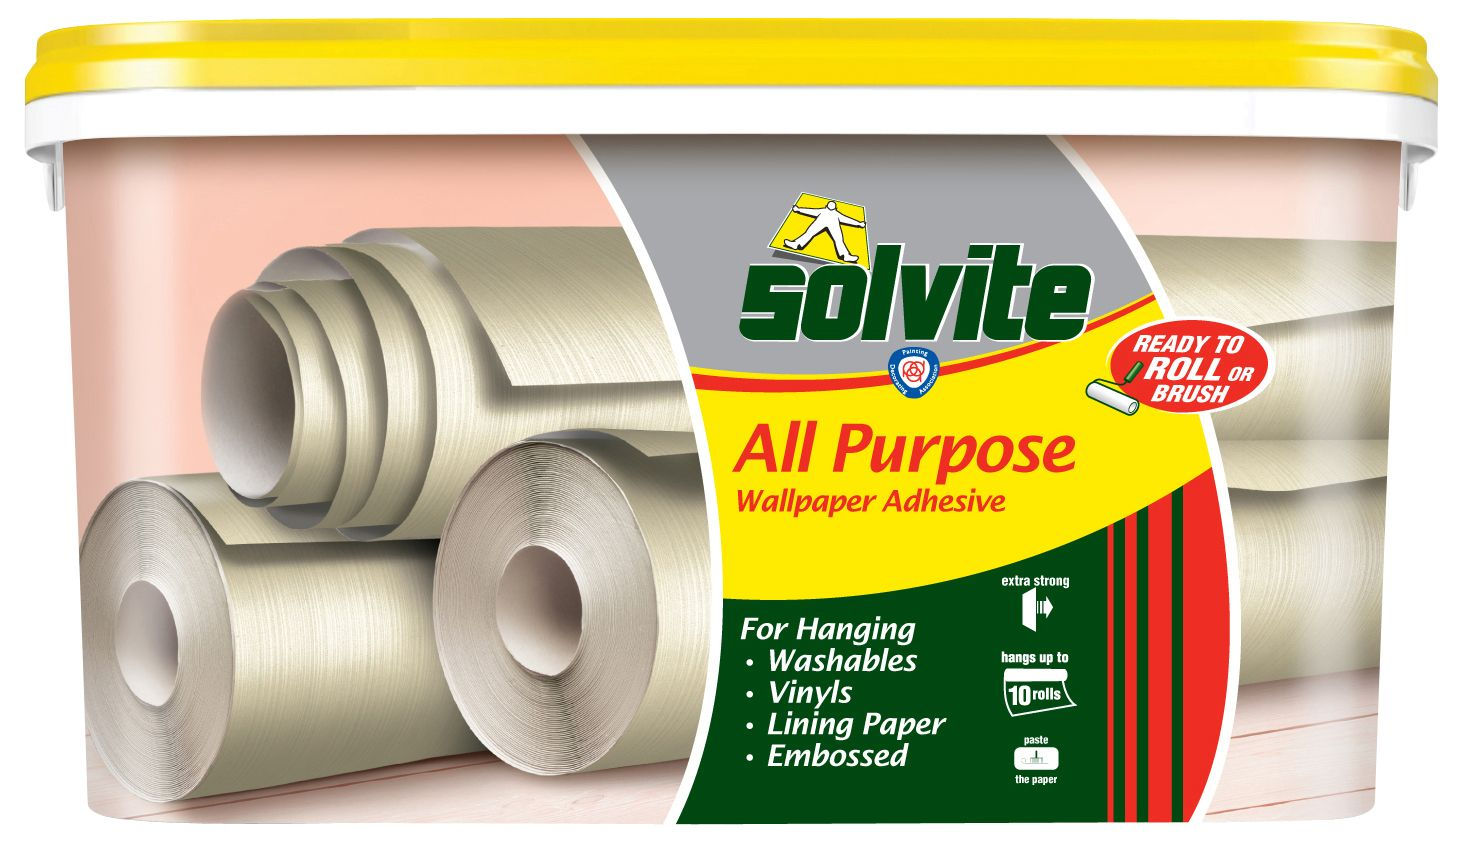 Solvite All Purpose Ready To Roll Wallpaper Adhesive 9kg Departments Diy At B Q